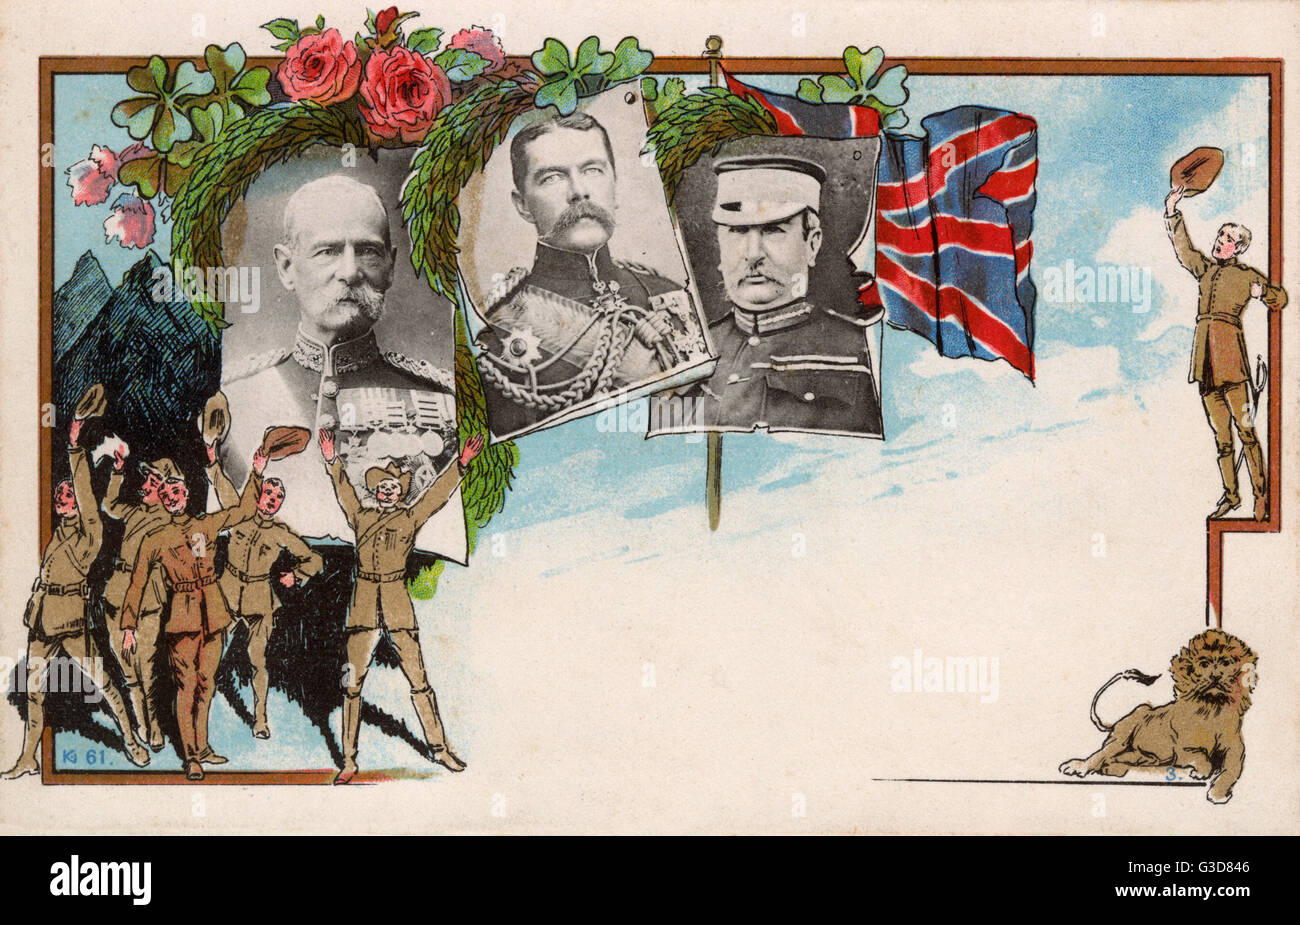 A victory celebration card showing British Commanders in South Africa at the end of the Second Boer War (1899-1902) - Stock Image